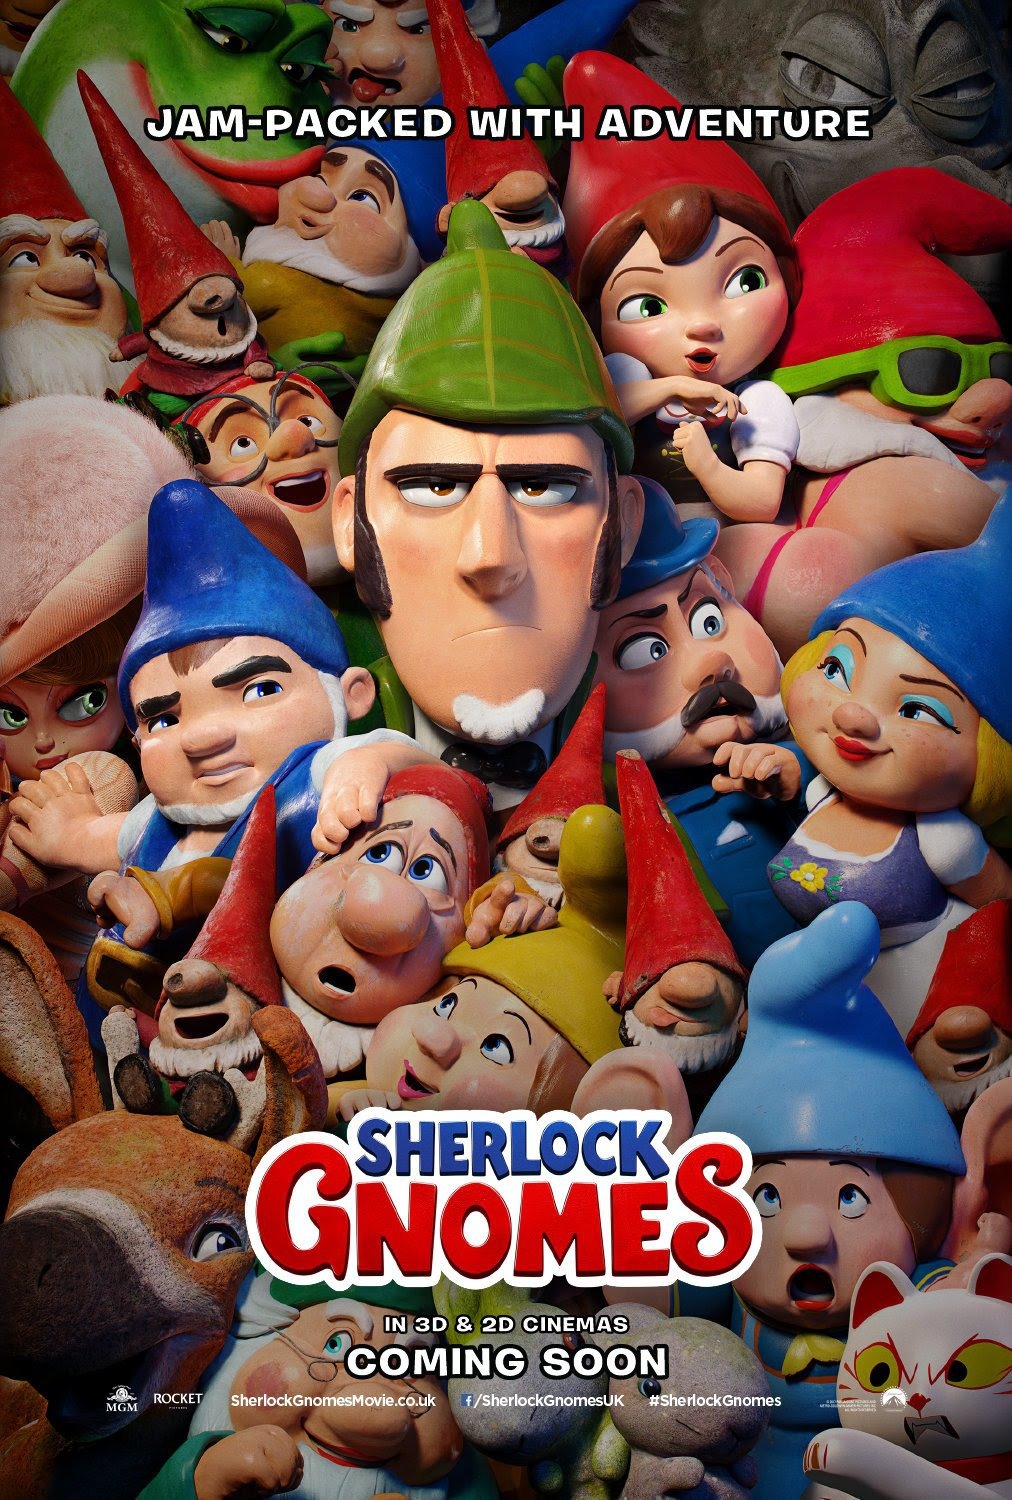 Most Epic Win Image Movies Releases 11th May 2018 Sherlock Gnomes